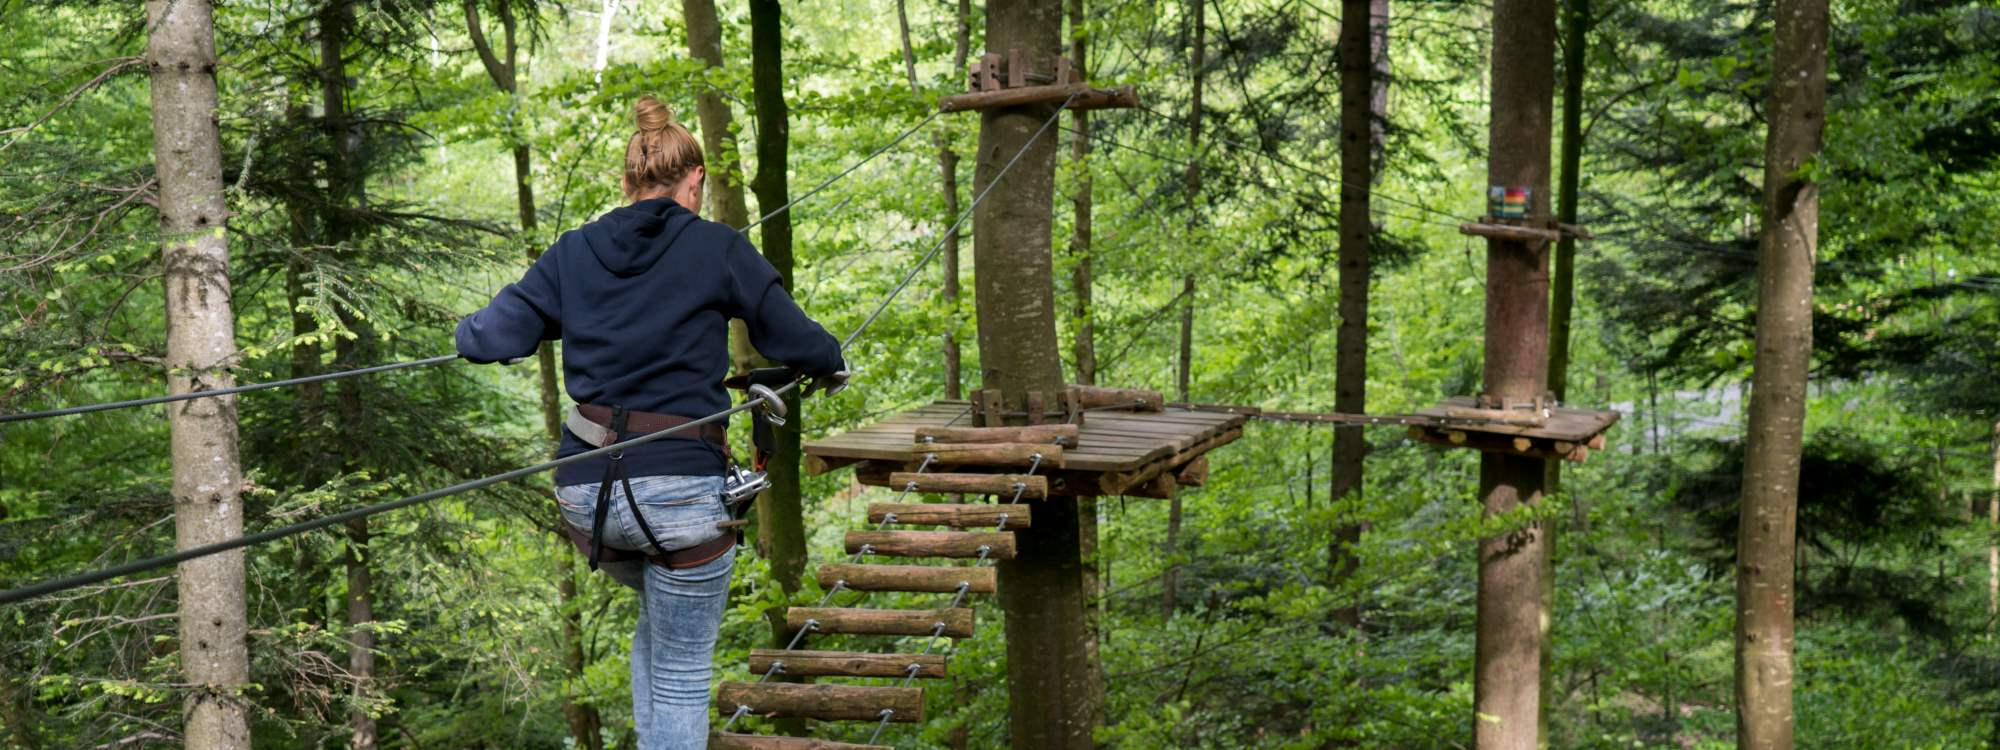 WOODEN BRIDGES, TARZAN SWINGS, AND ZIP LINES...